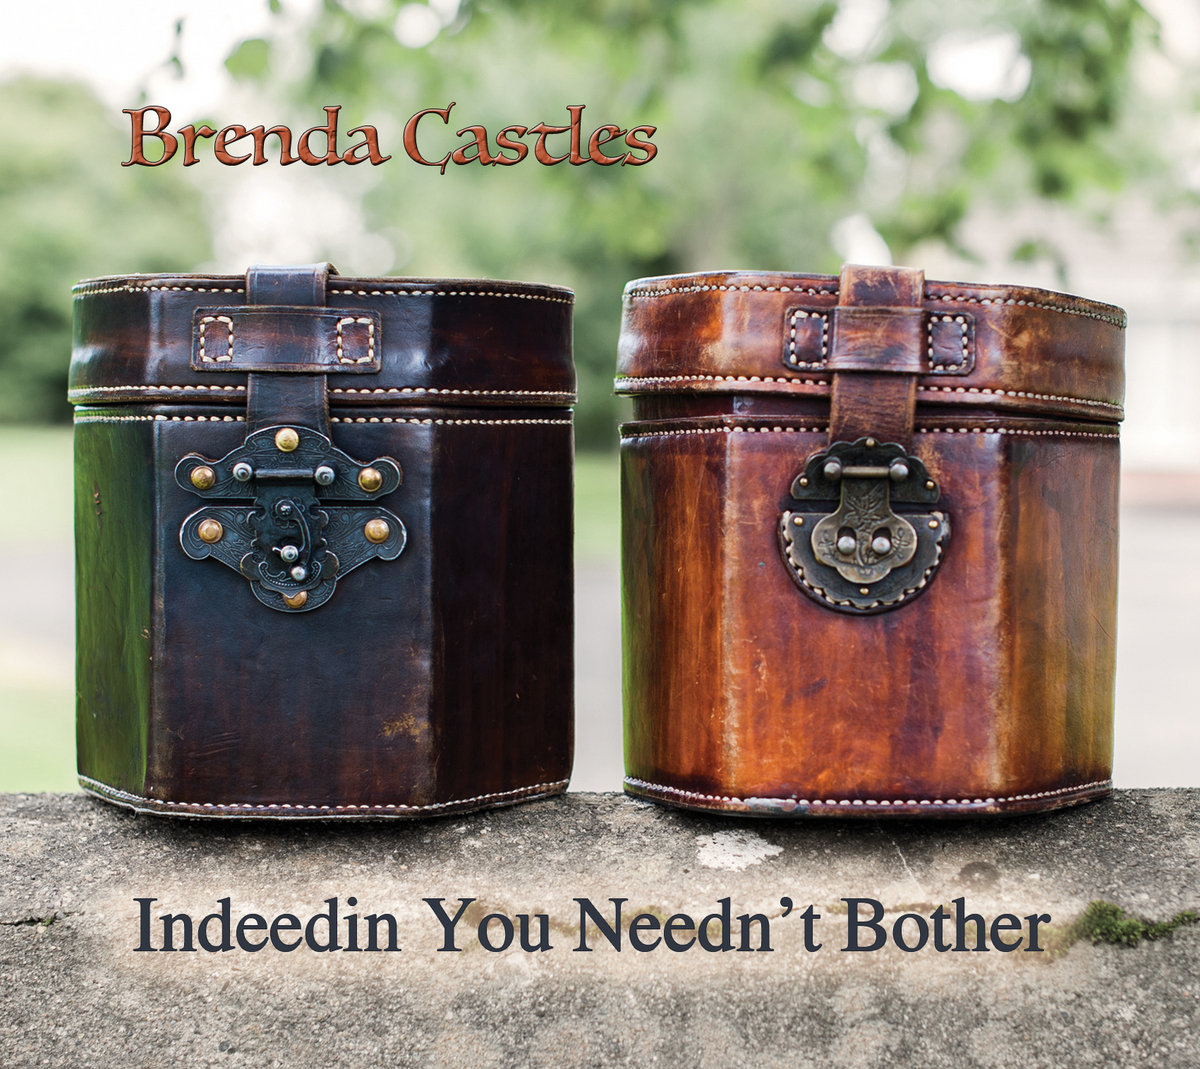 Indeedin You Needn't Bother-Puzzle Saw Jig | Brenda Castles